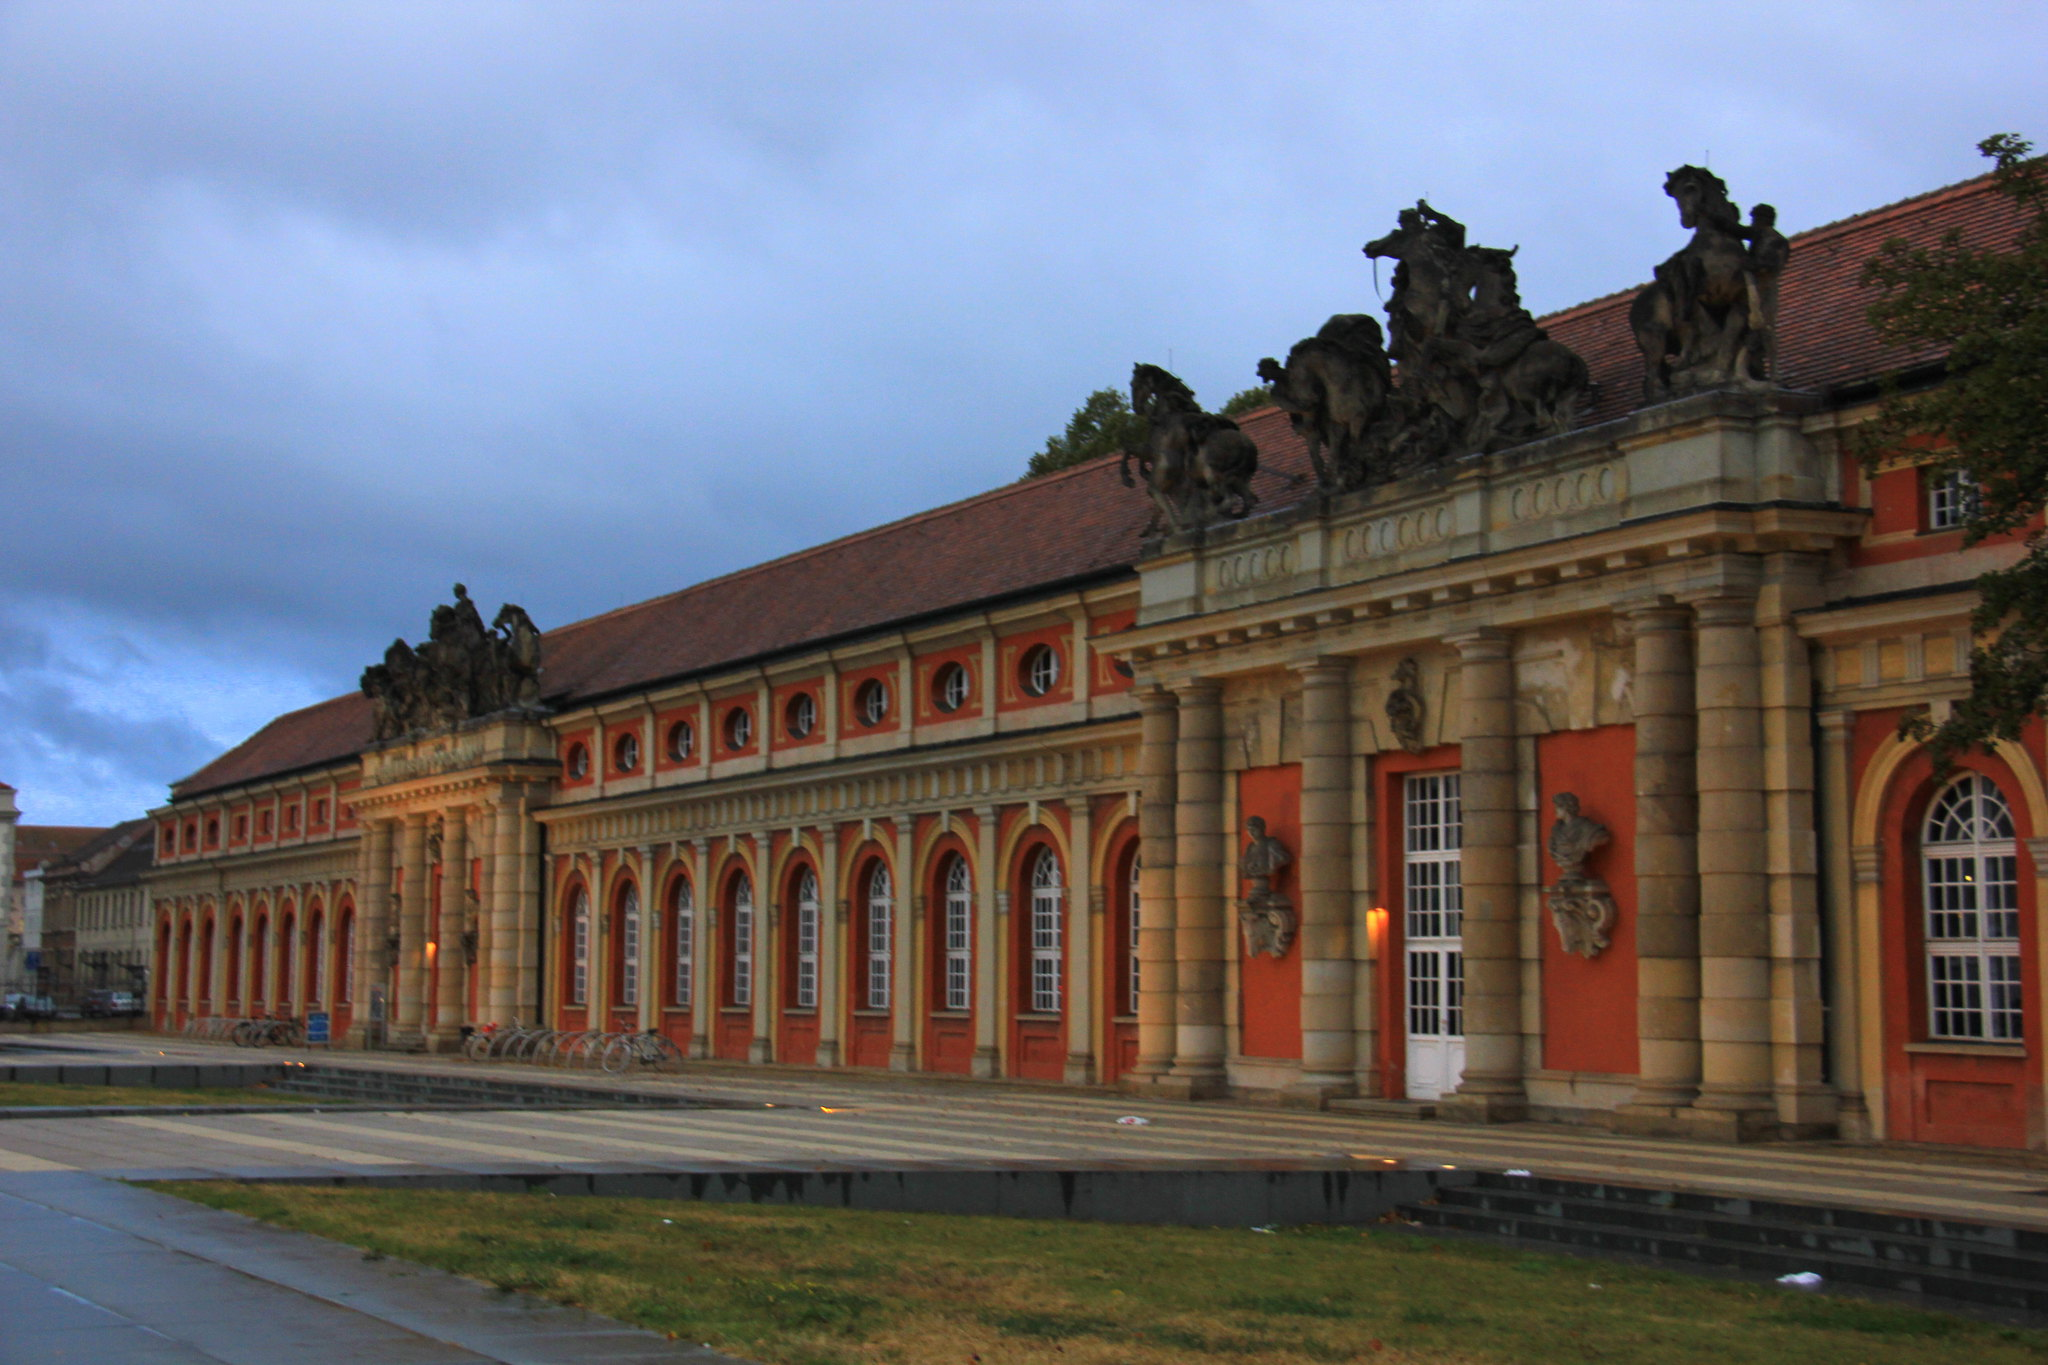 Potsdam has a very famous film museum